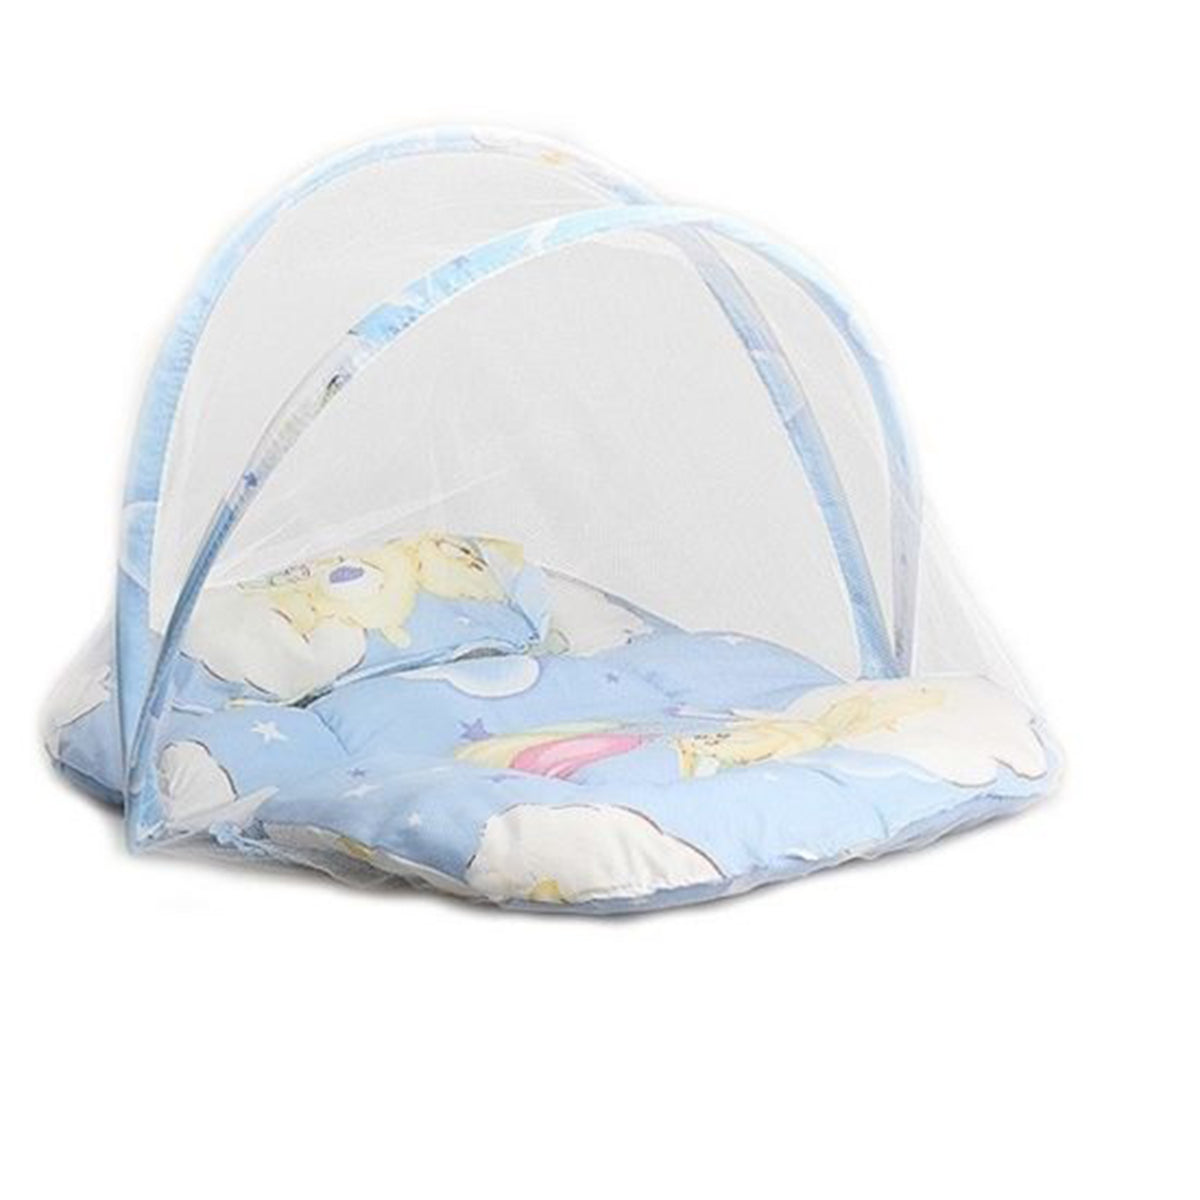 Foldable Infant Bed with Mosquito Net